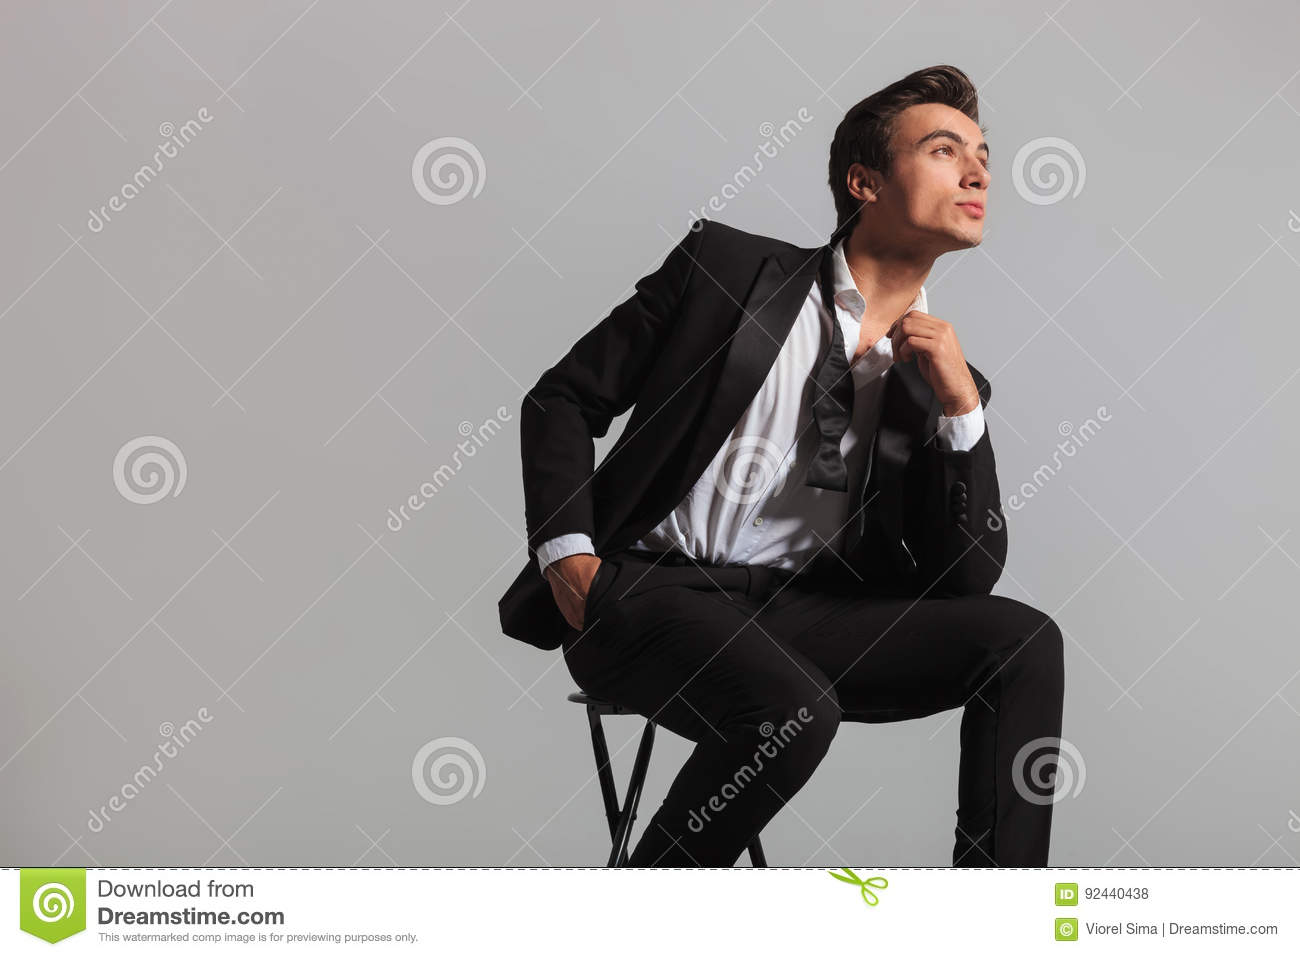 c47279e9c3b6 Young man in tuxedo and undone bowtie dreaming while sitting on chair in  studio